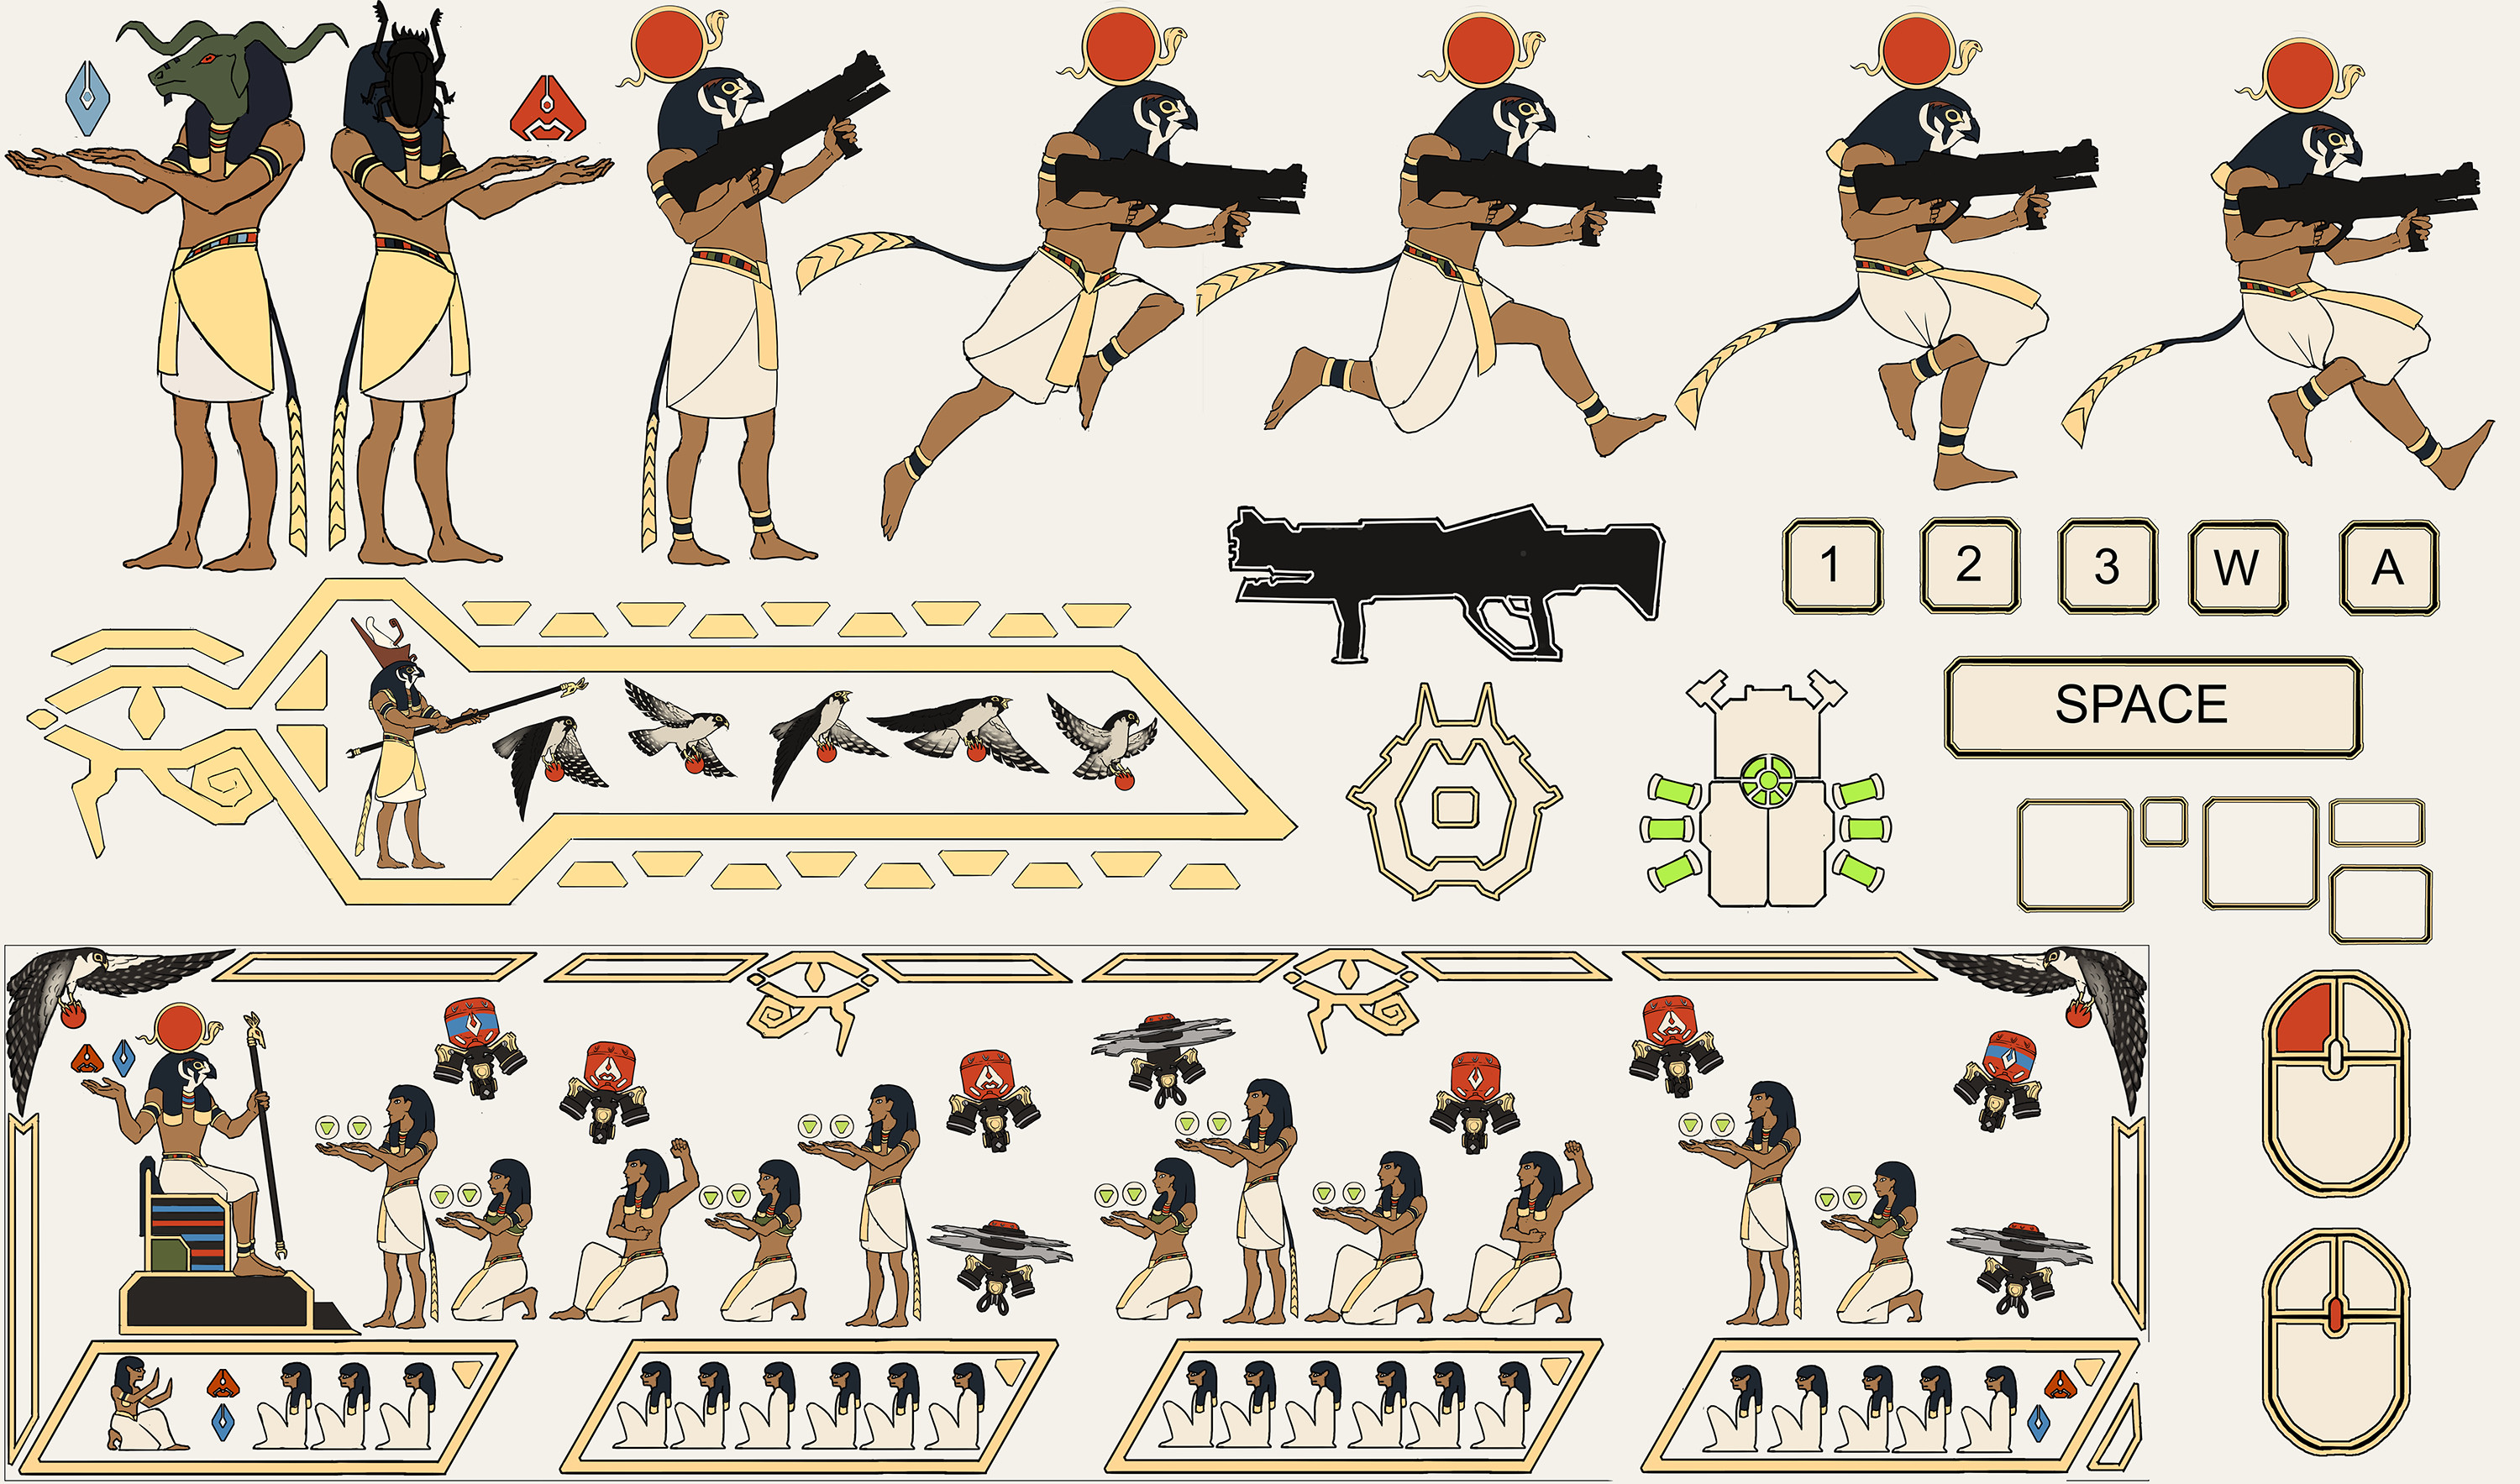 I was in charge of creating all the 2D assets for the game. My task here where to create not only 2D assets that resembled Egyptian wall paintings, but also create assets for the tutorial level.